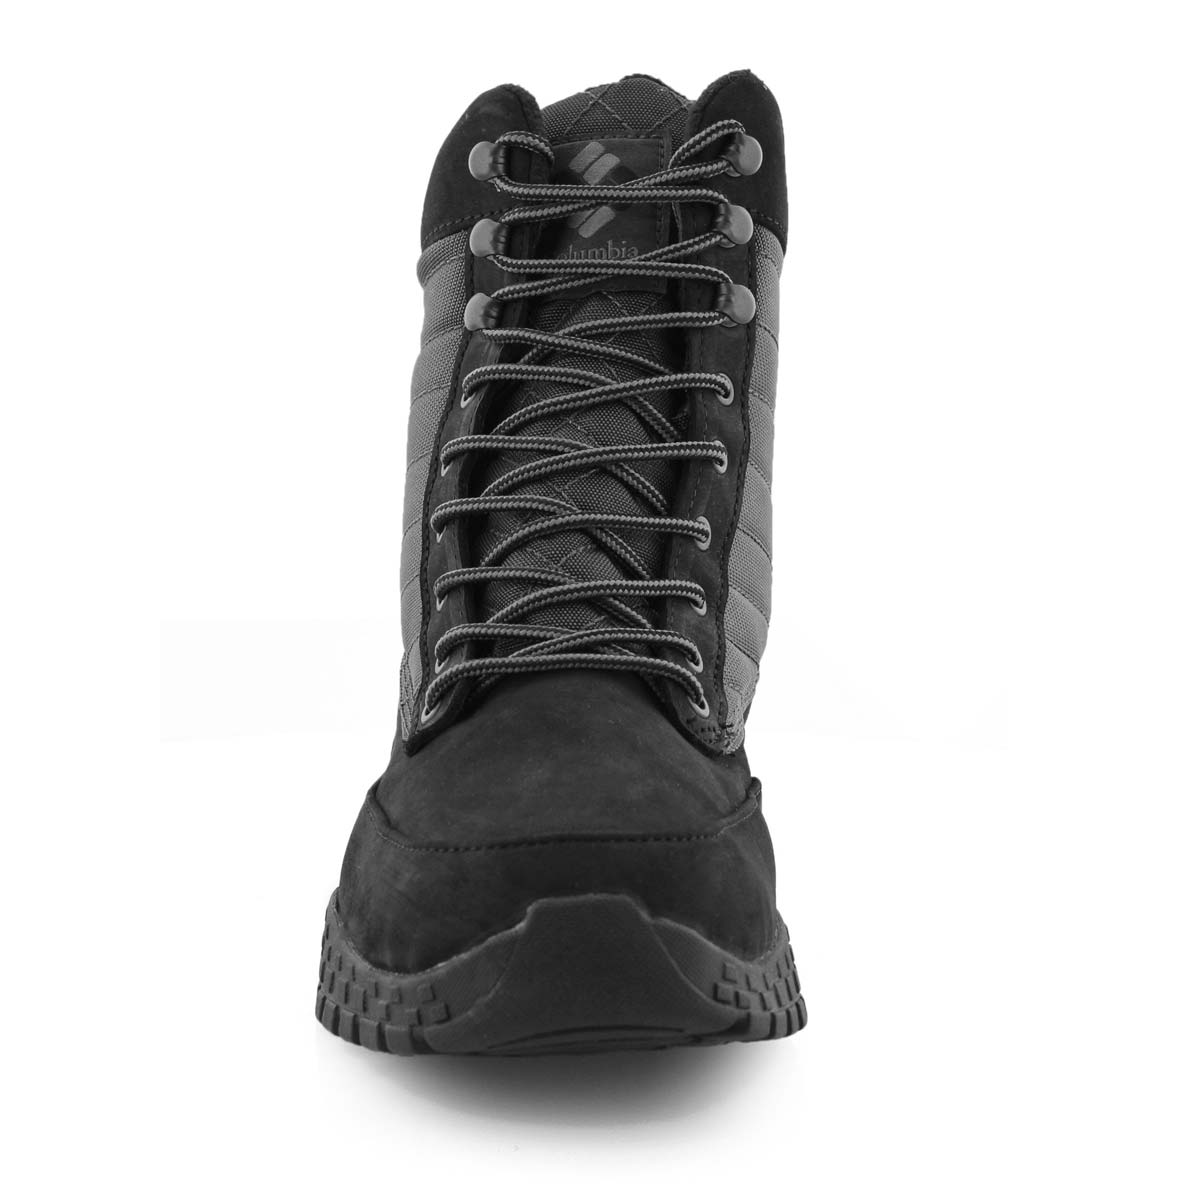 Mns Fairbanks 1006 OmniHeat blk wp boot